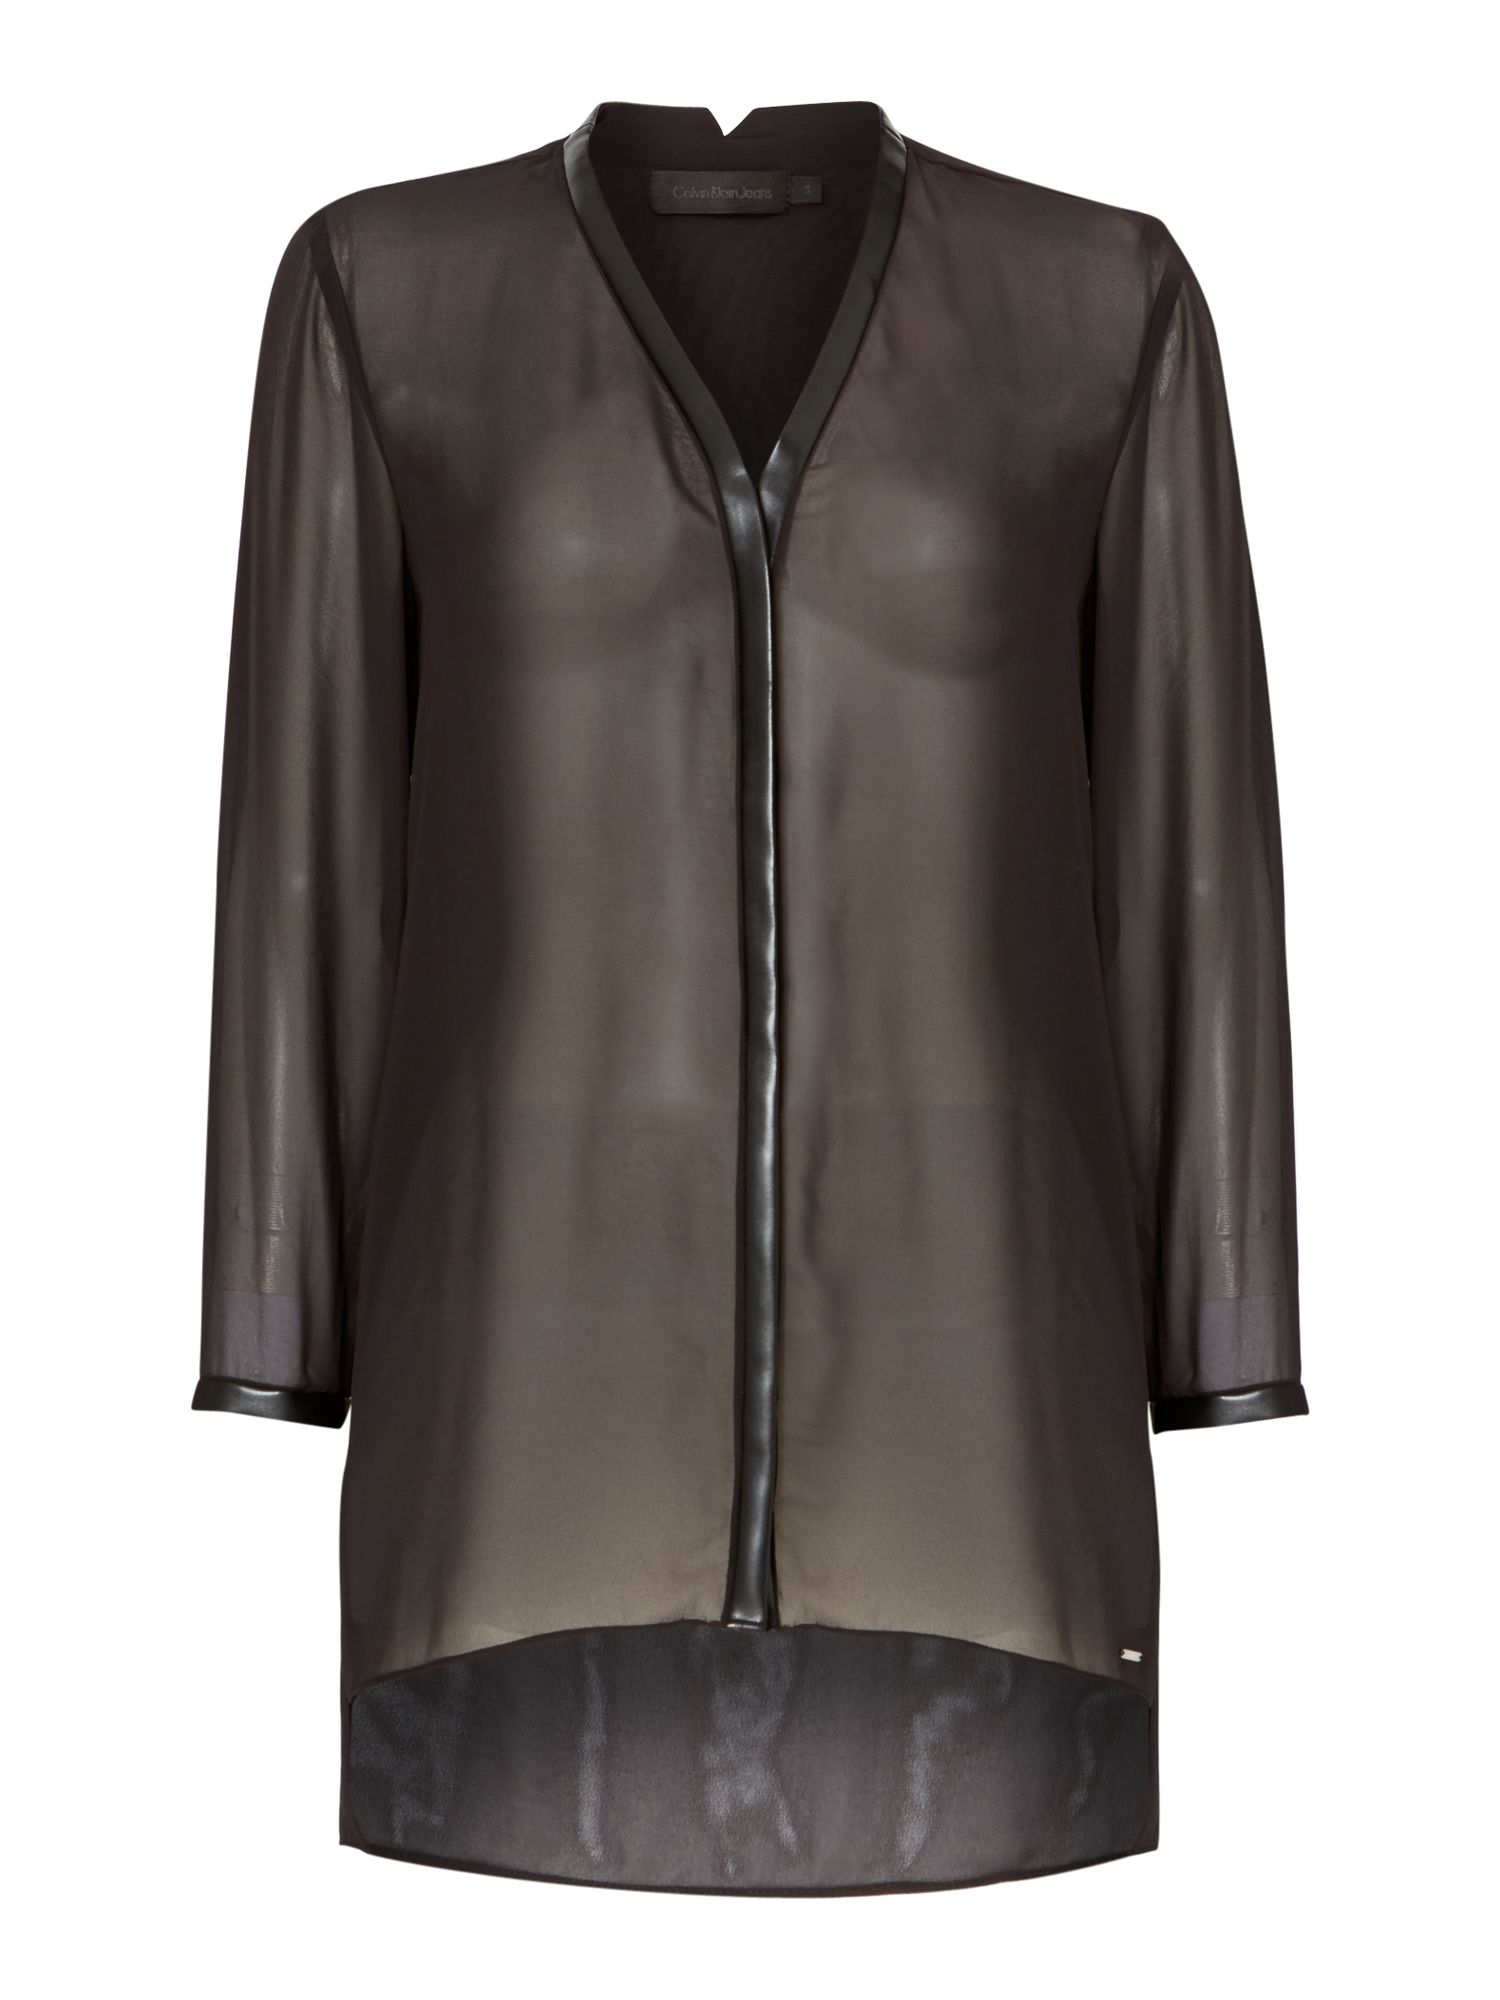 Walem shirt with leather trim in meteorite